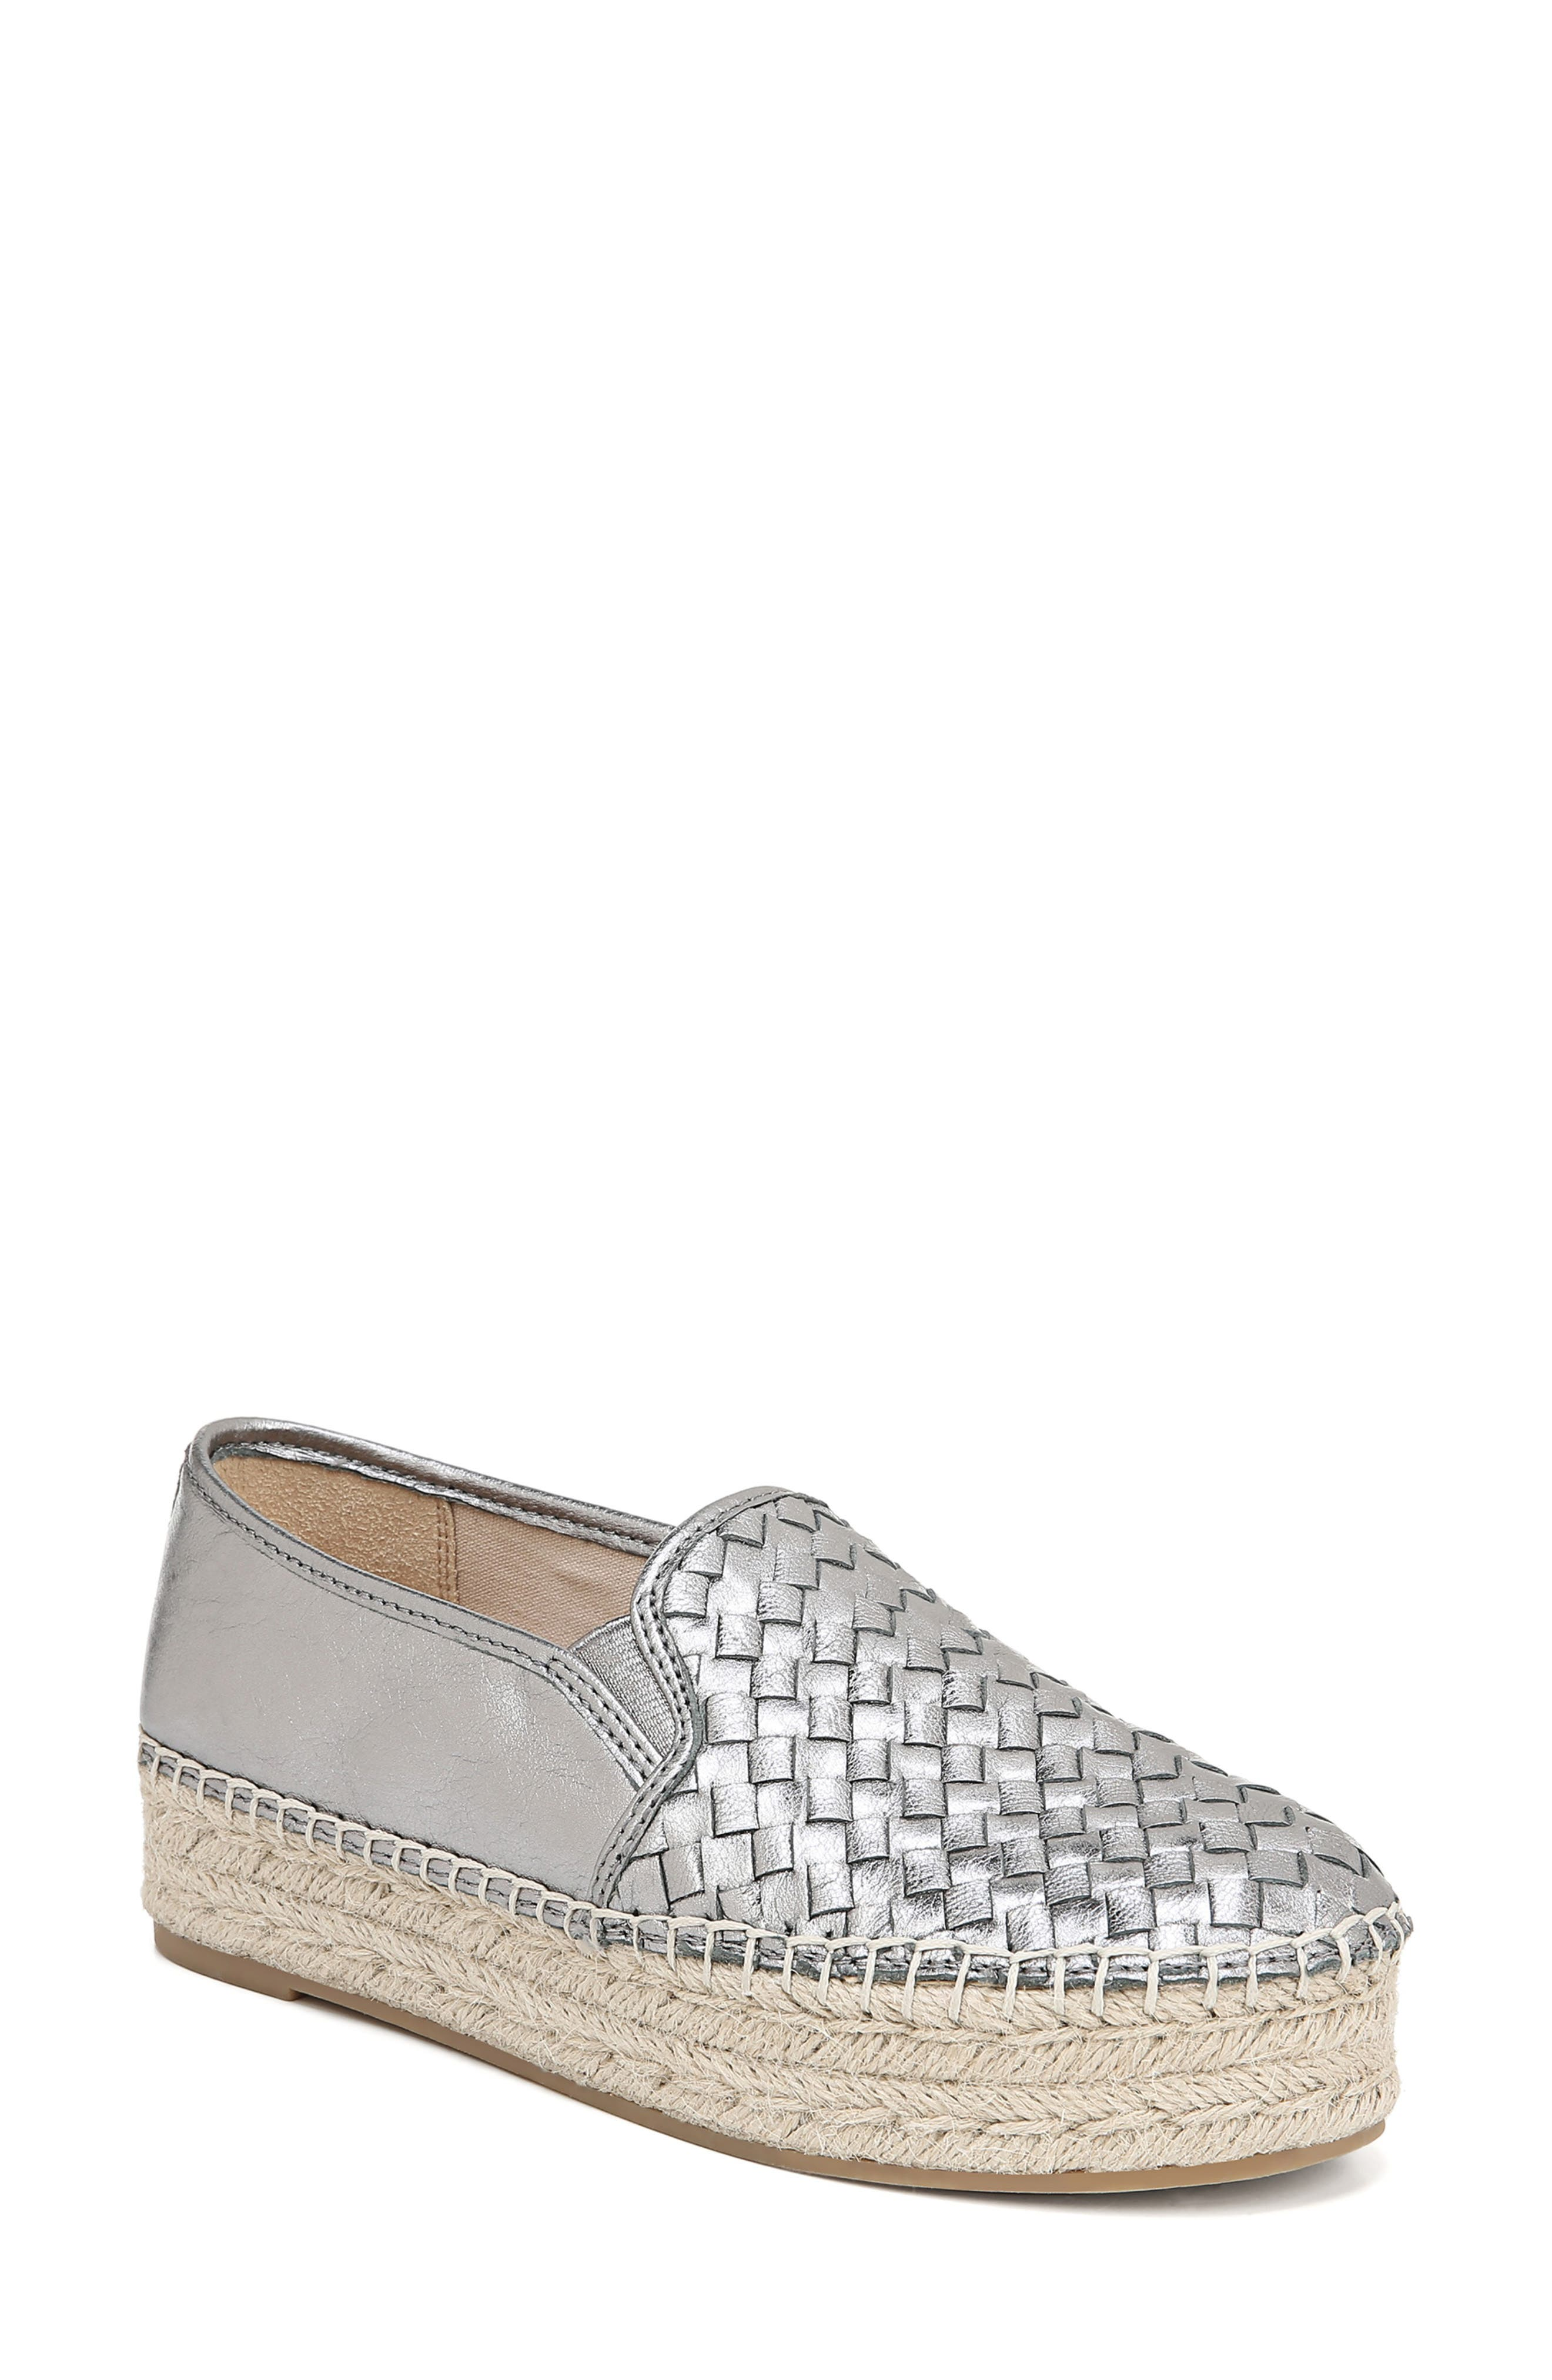 Women'S Catherine Woven Metallic Leather Platform Espadrilles in Pewter Leather